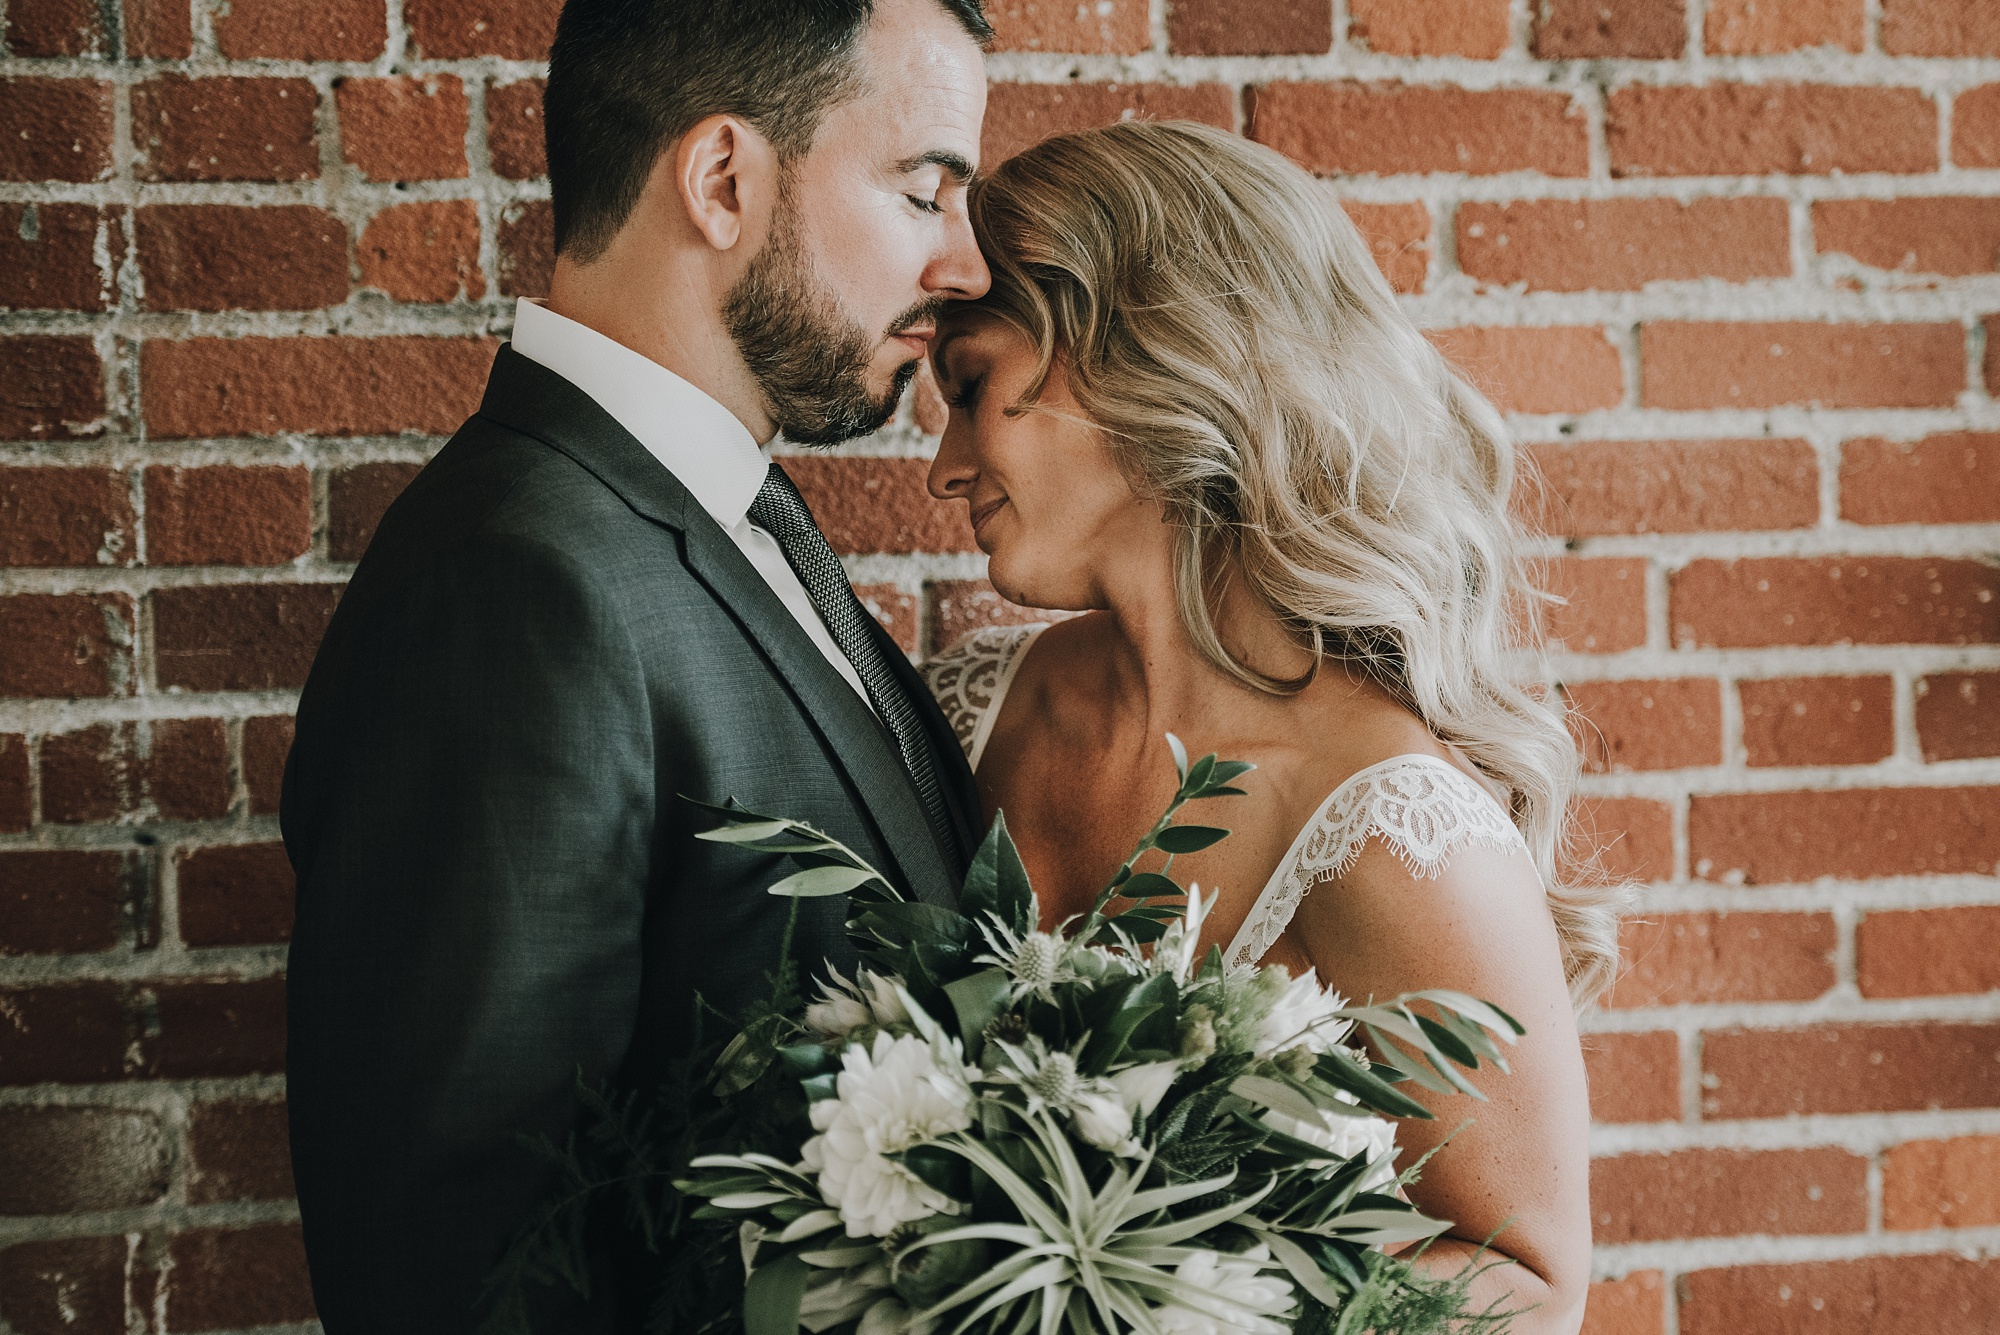 Bride and groom in front of rustic brick wall in modern, industrial calgary wedding